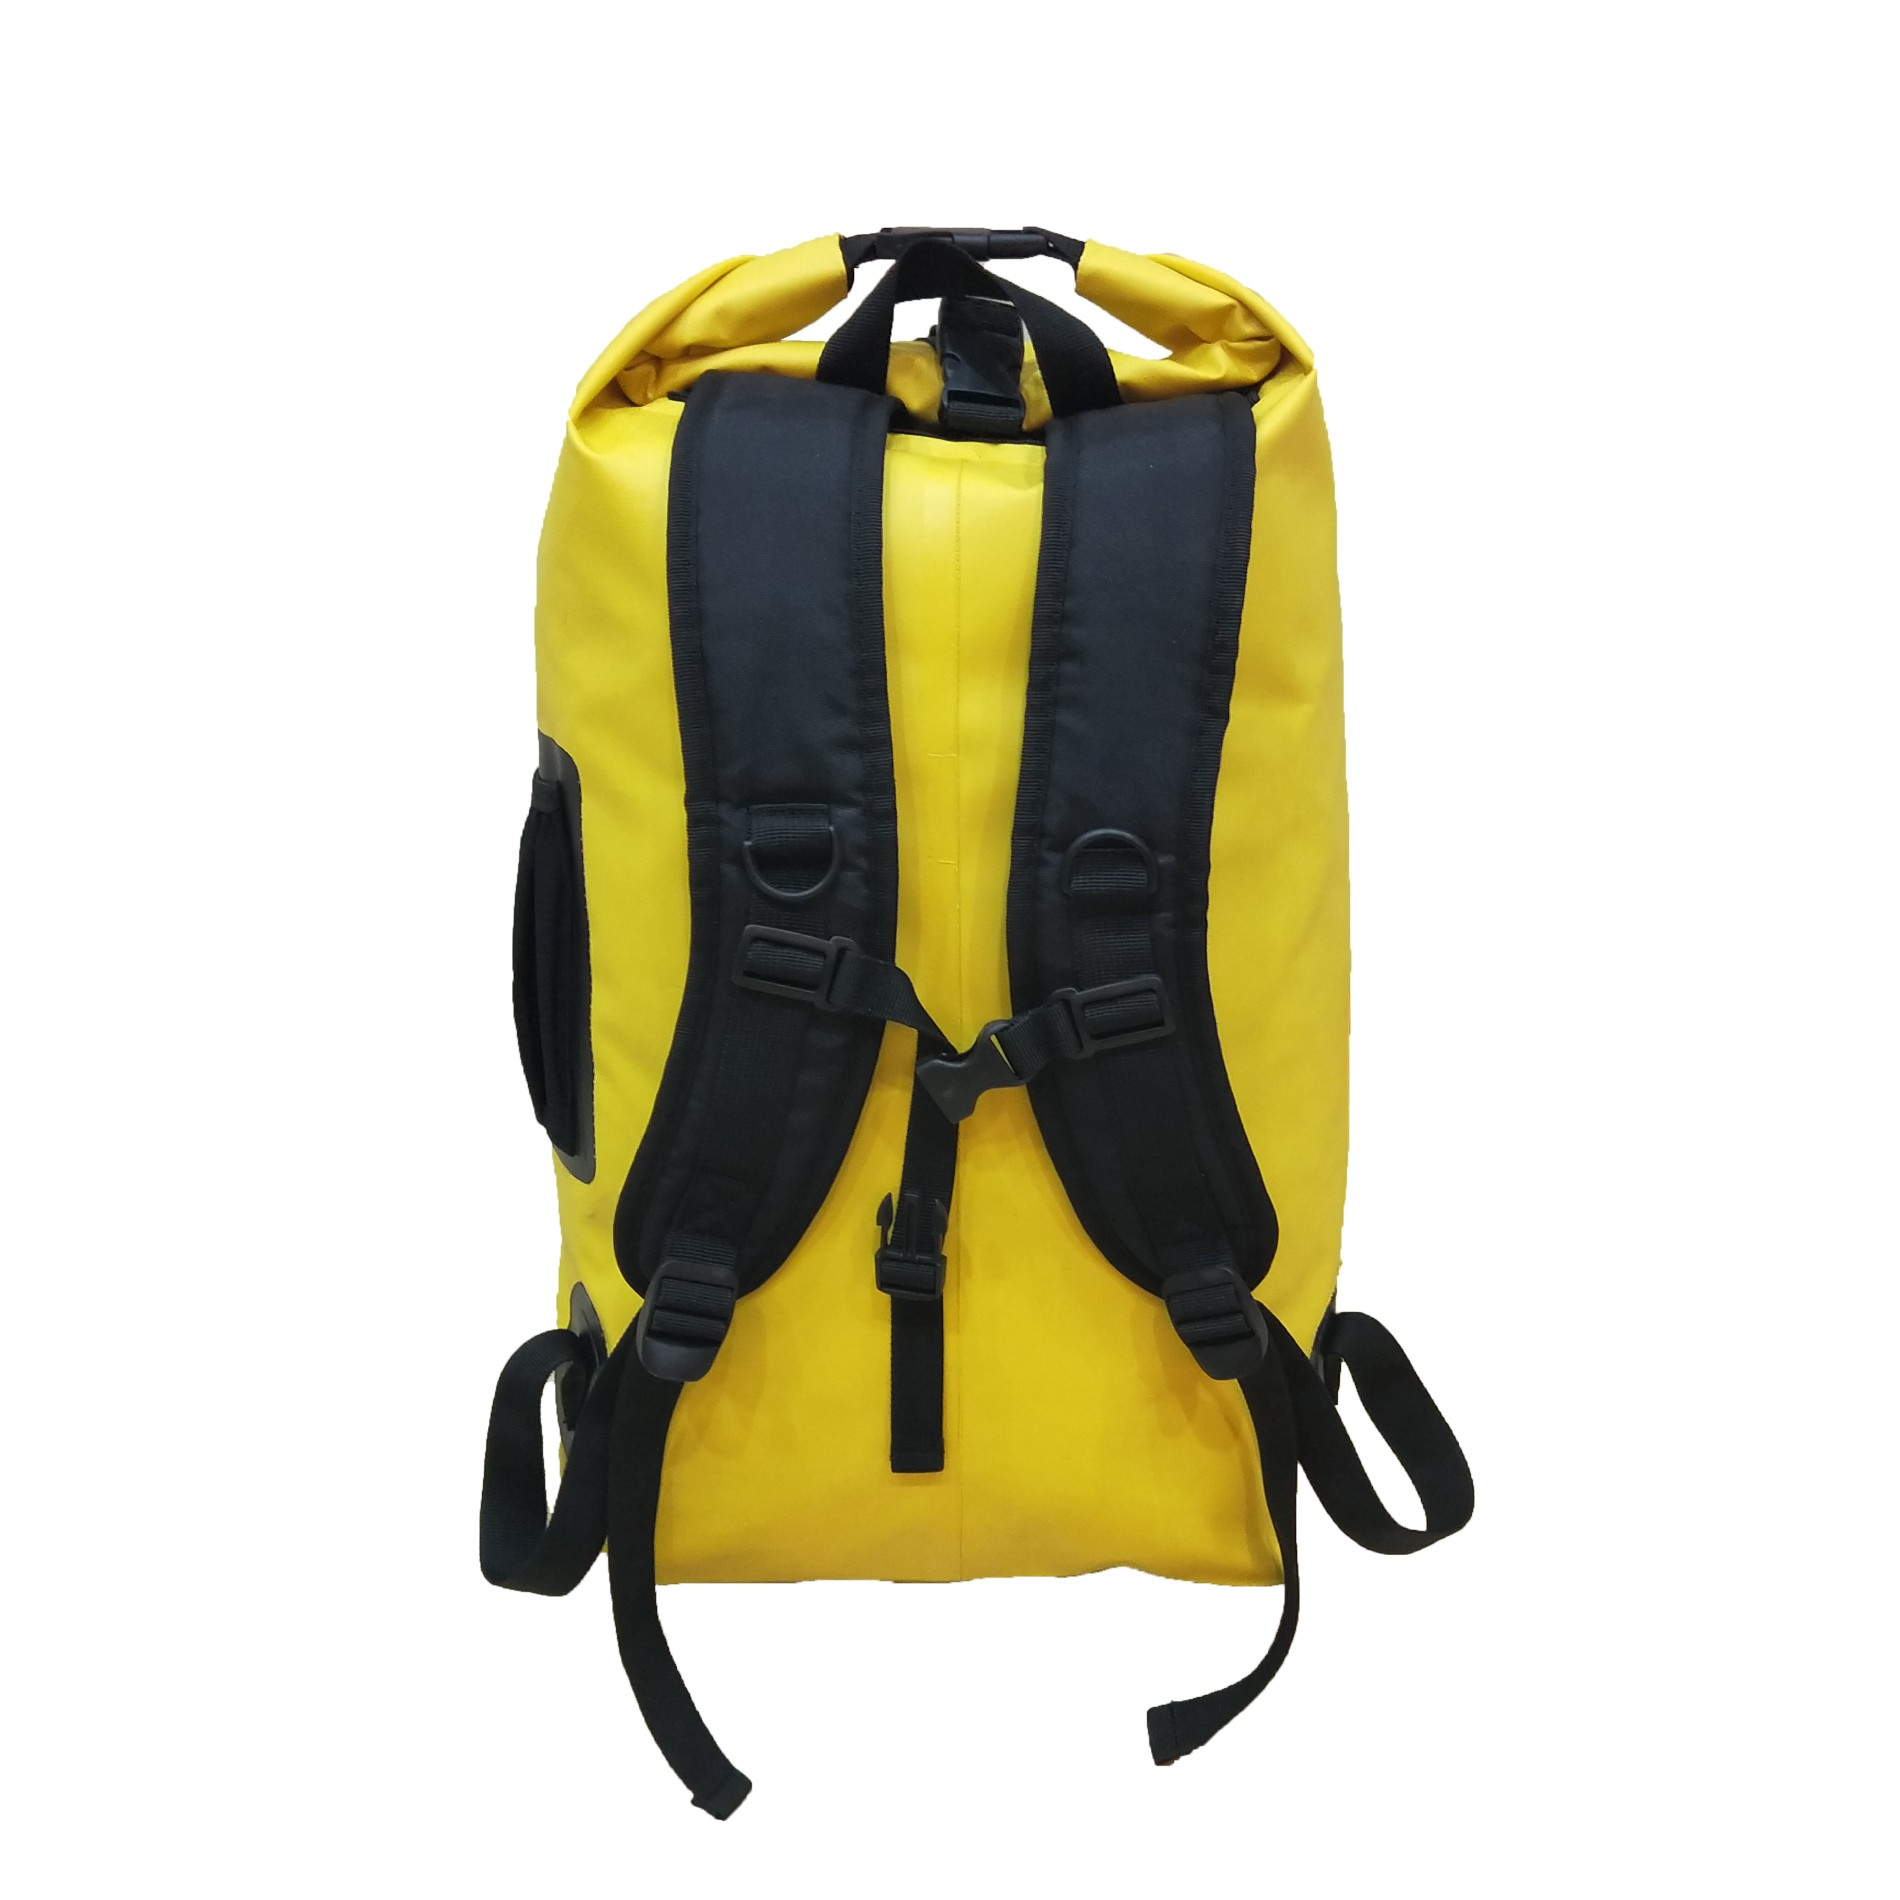 Waterproof Backpack Dry Bag Manufacturers, Waterproof Backpack Dry Bag Factory, Supply Waterproof Backpack Dry Bag